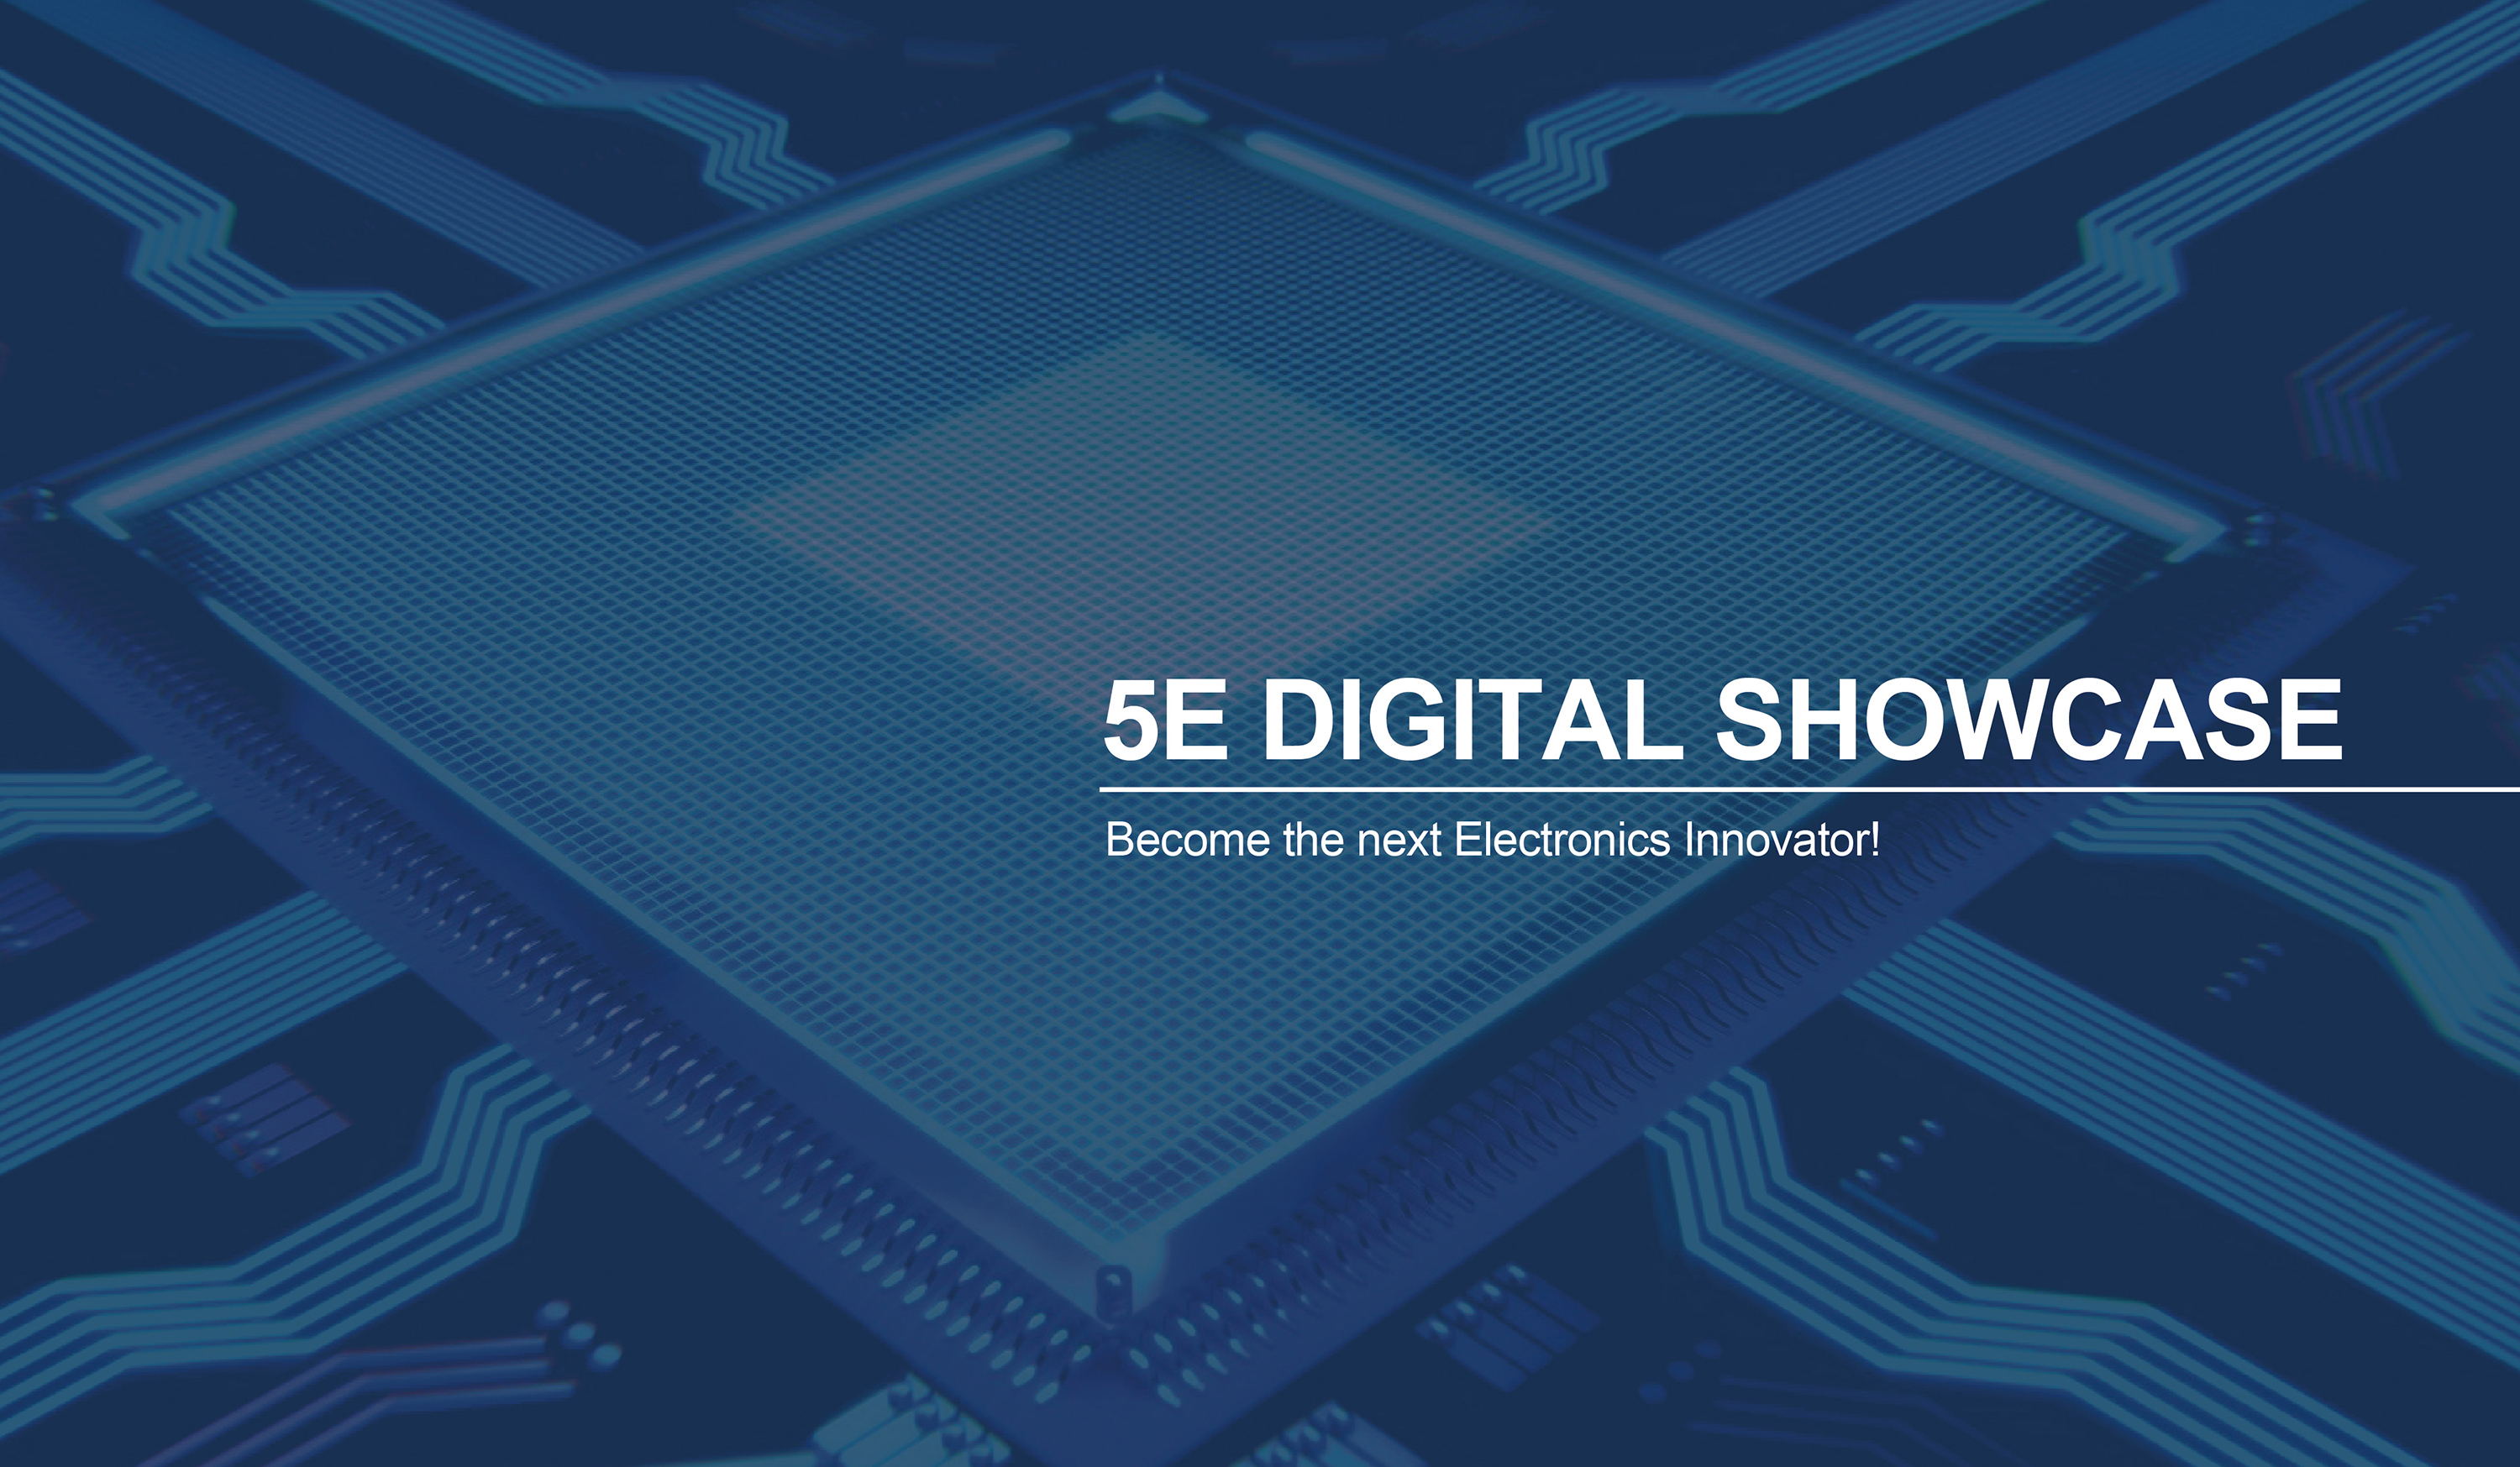 5e digital showcase